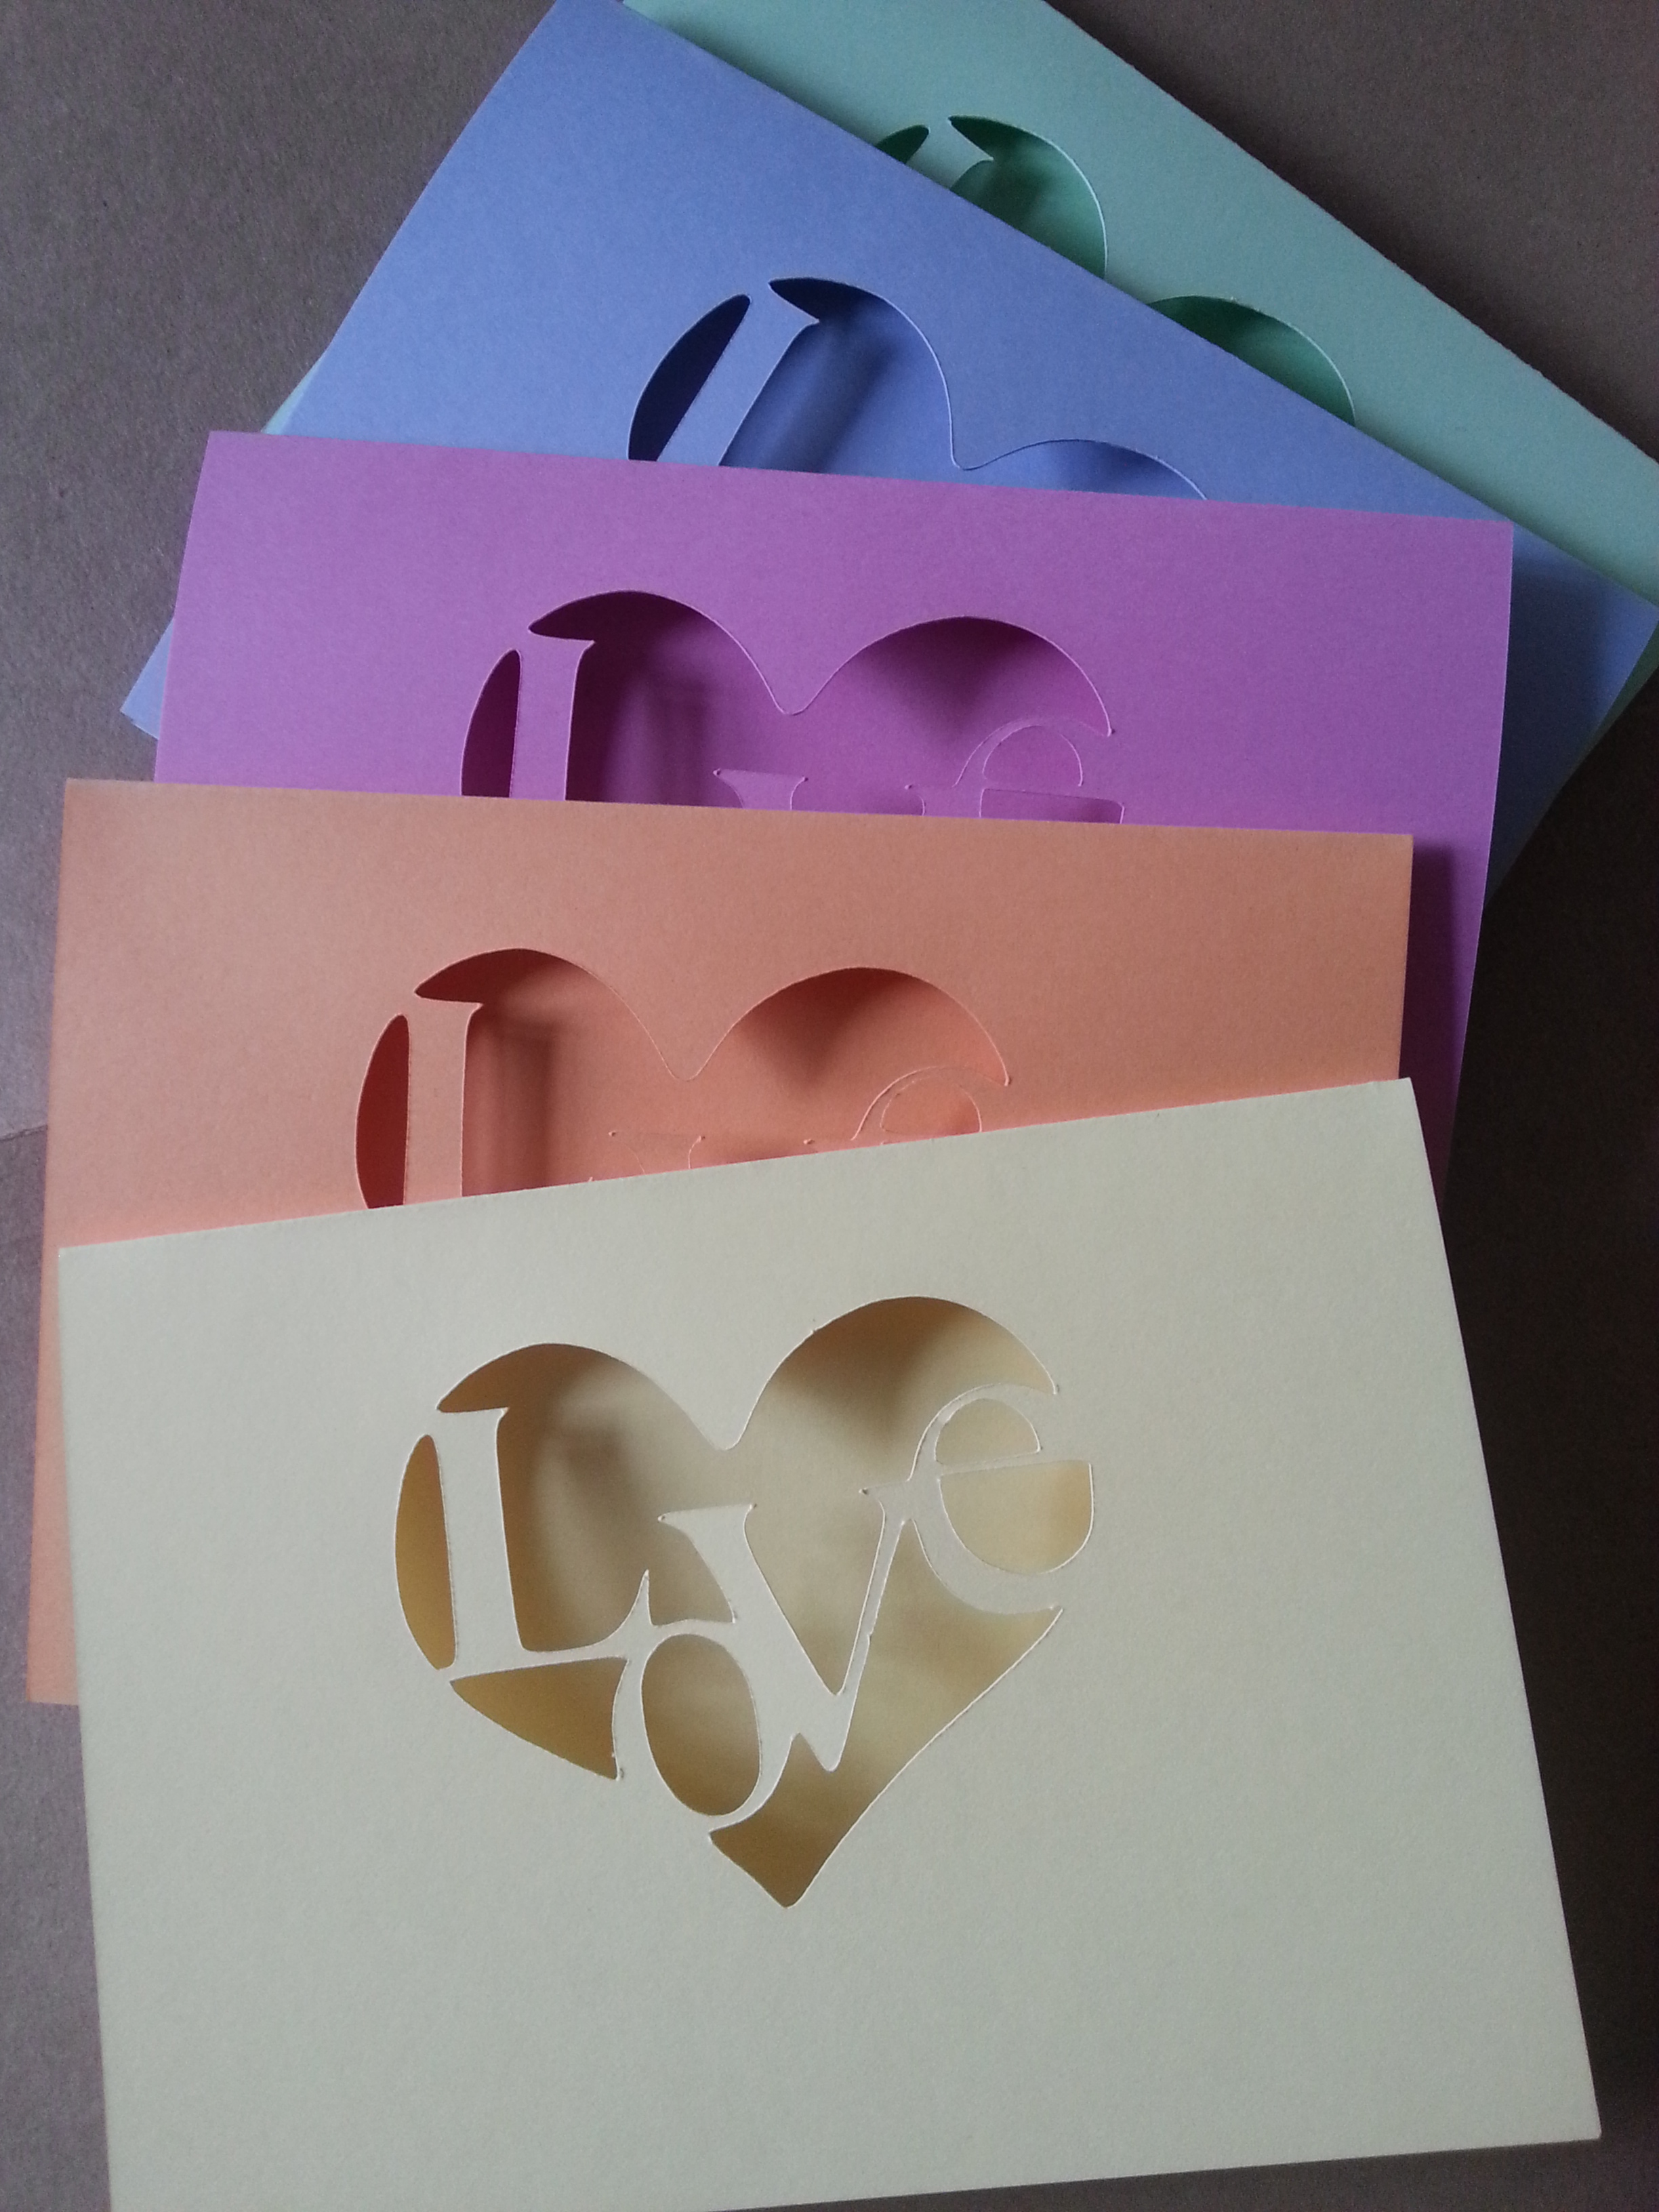 Rainbow love card collection cut out design